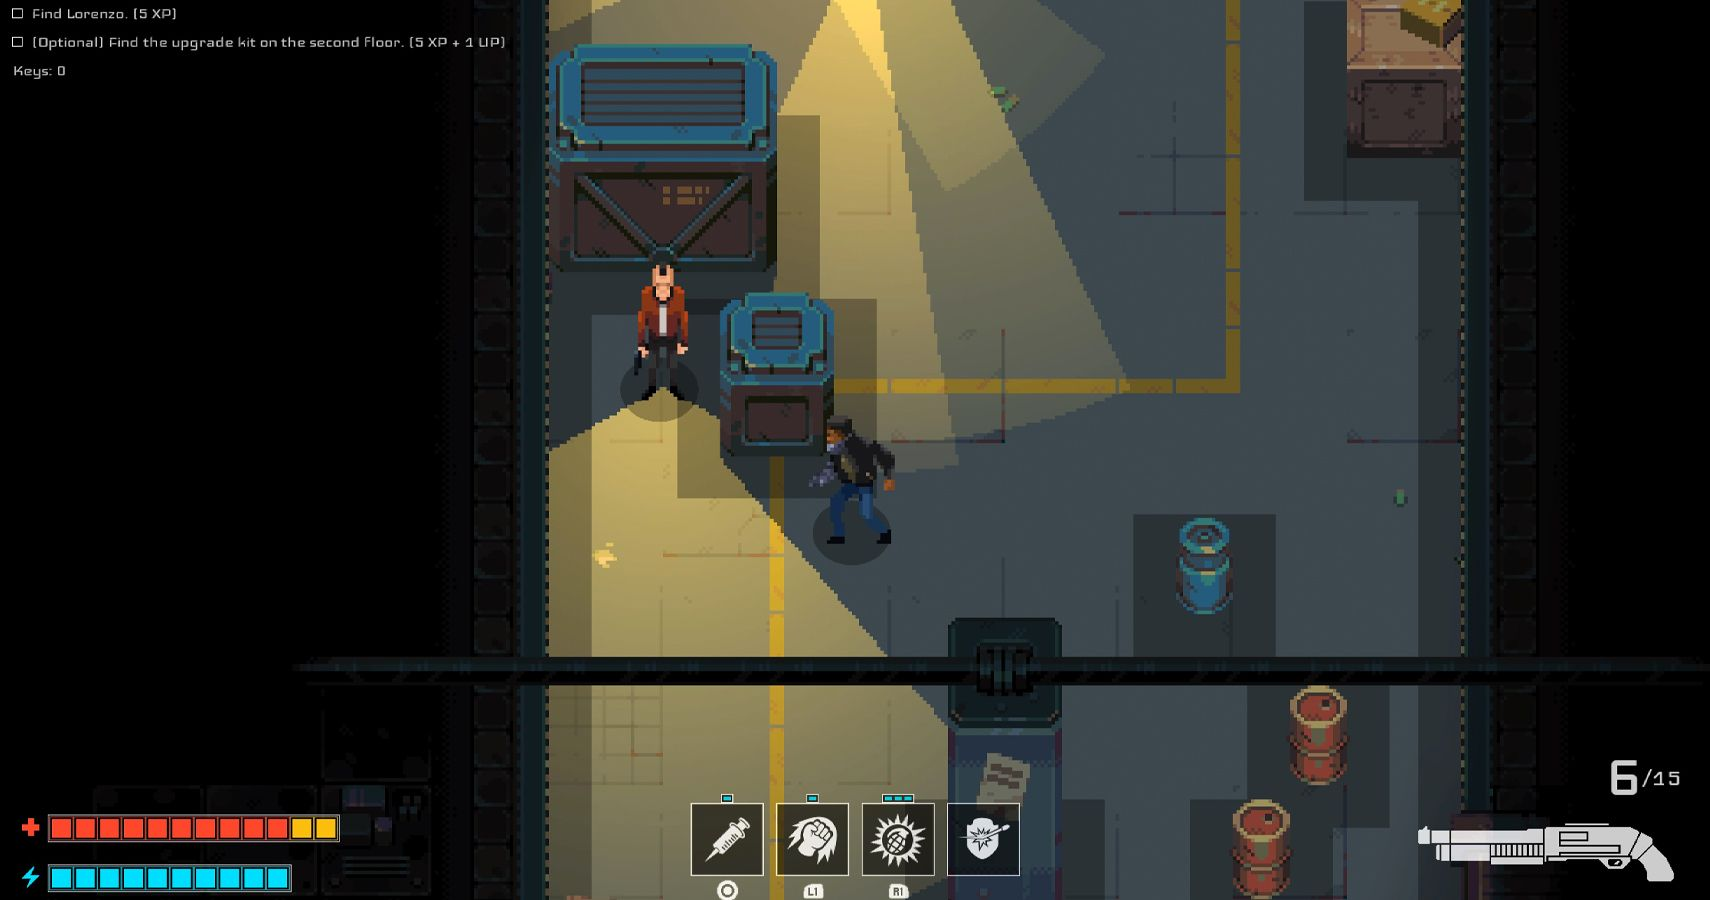 Disjunction Preview: Cyberpunk Meets Metal Gear Solid